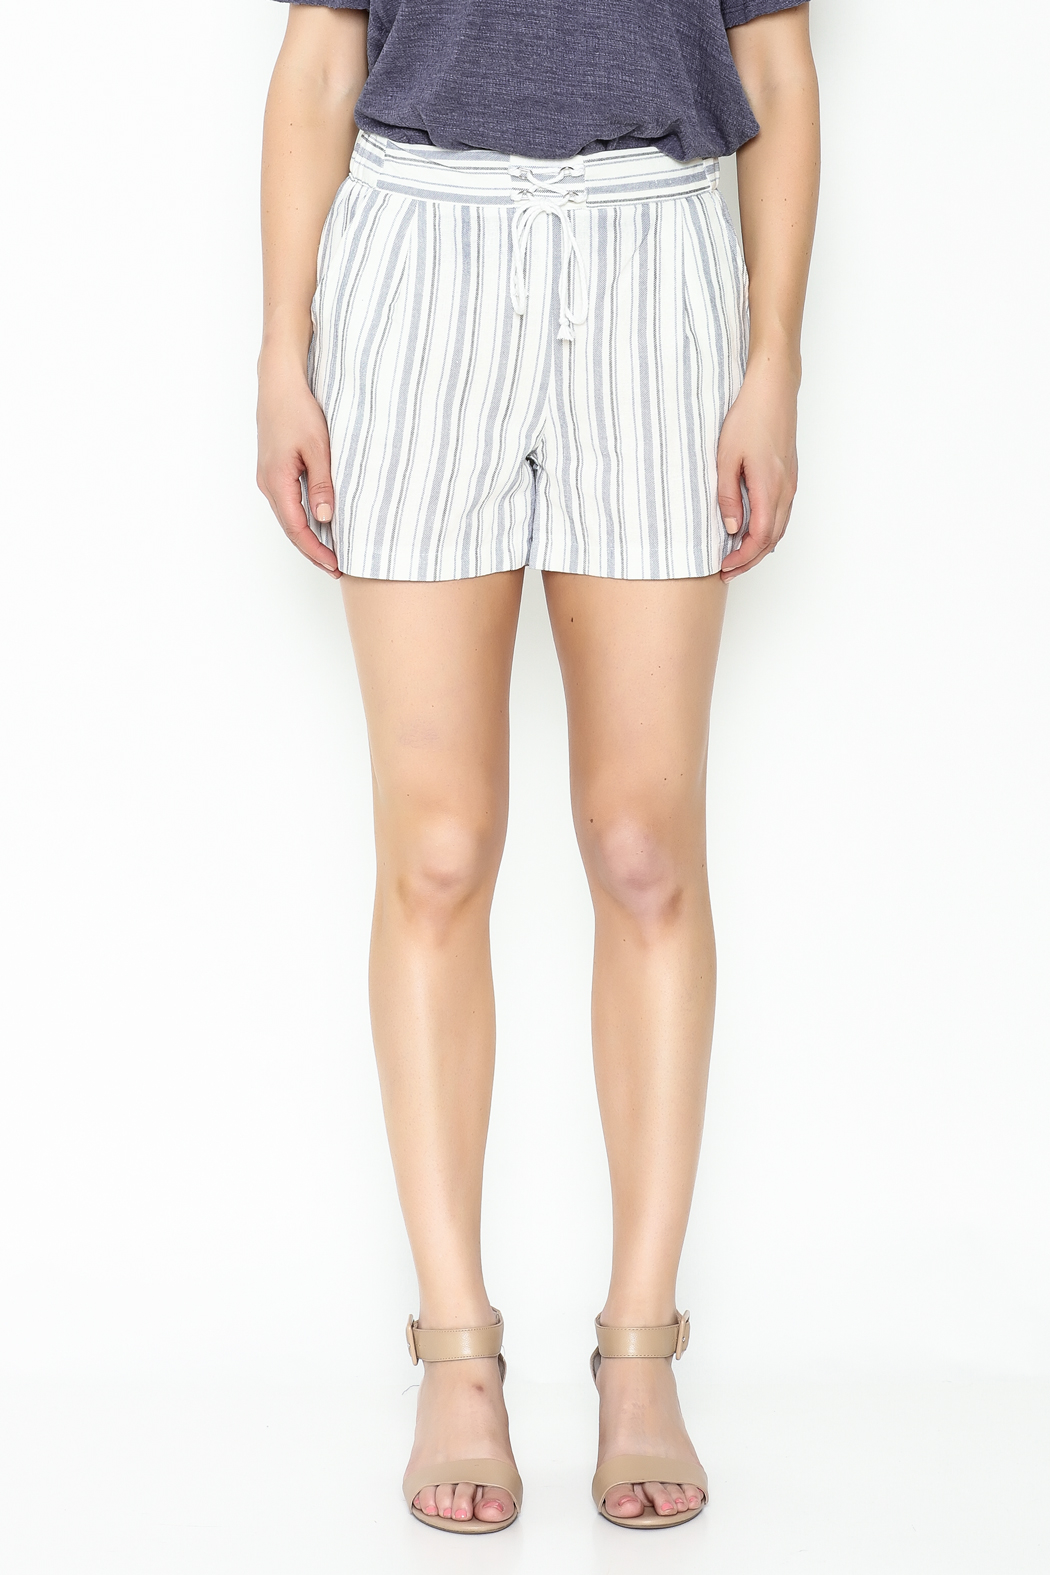 Potter's Pot Striped Shorts - Front Full Image